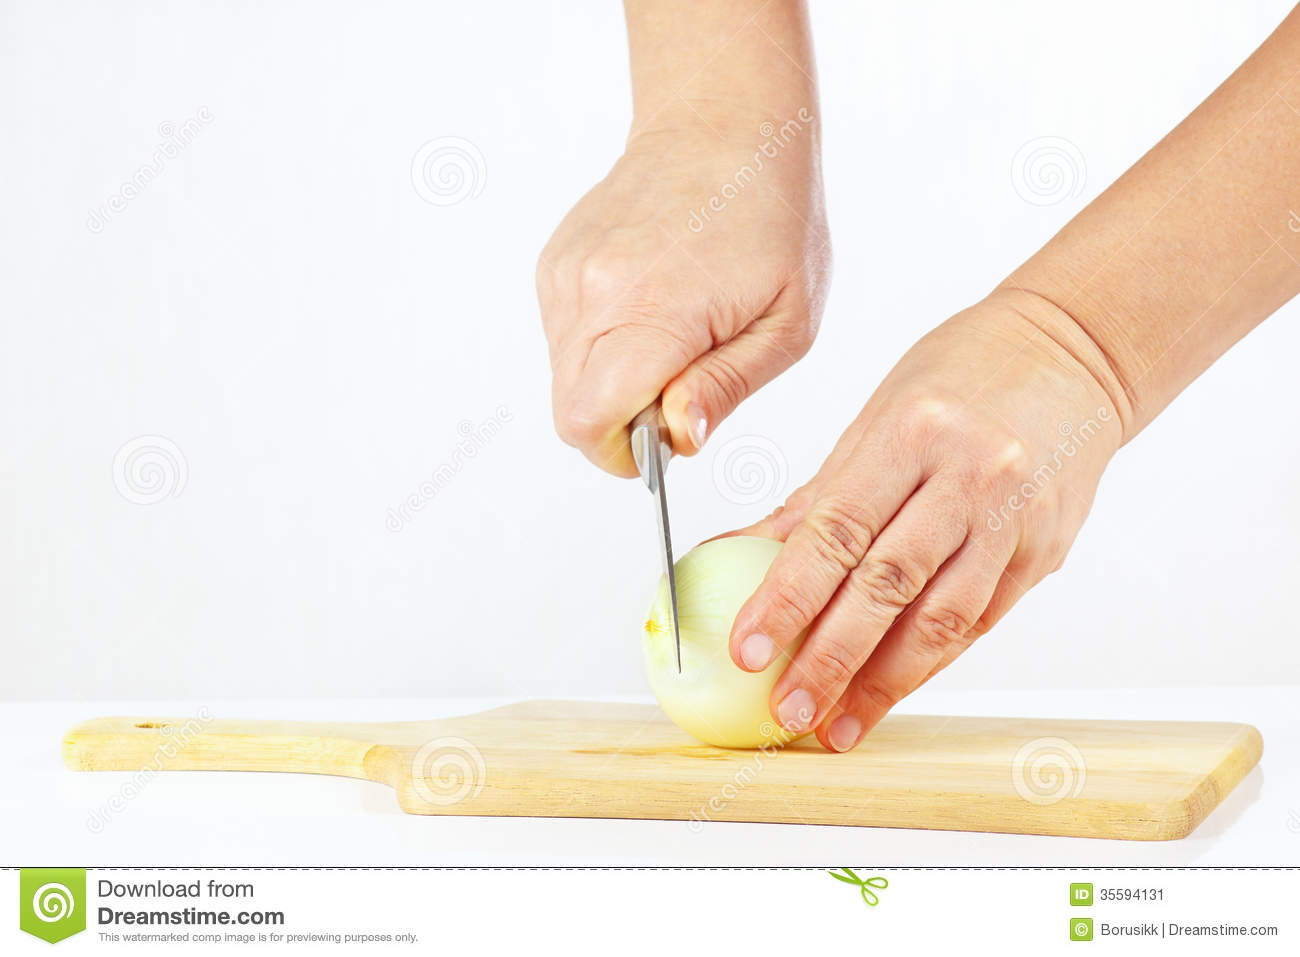 Hand With A Knife Cuts Raw Onion Stock Image - Image: 35594131